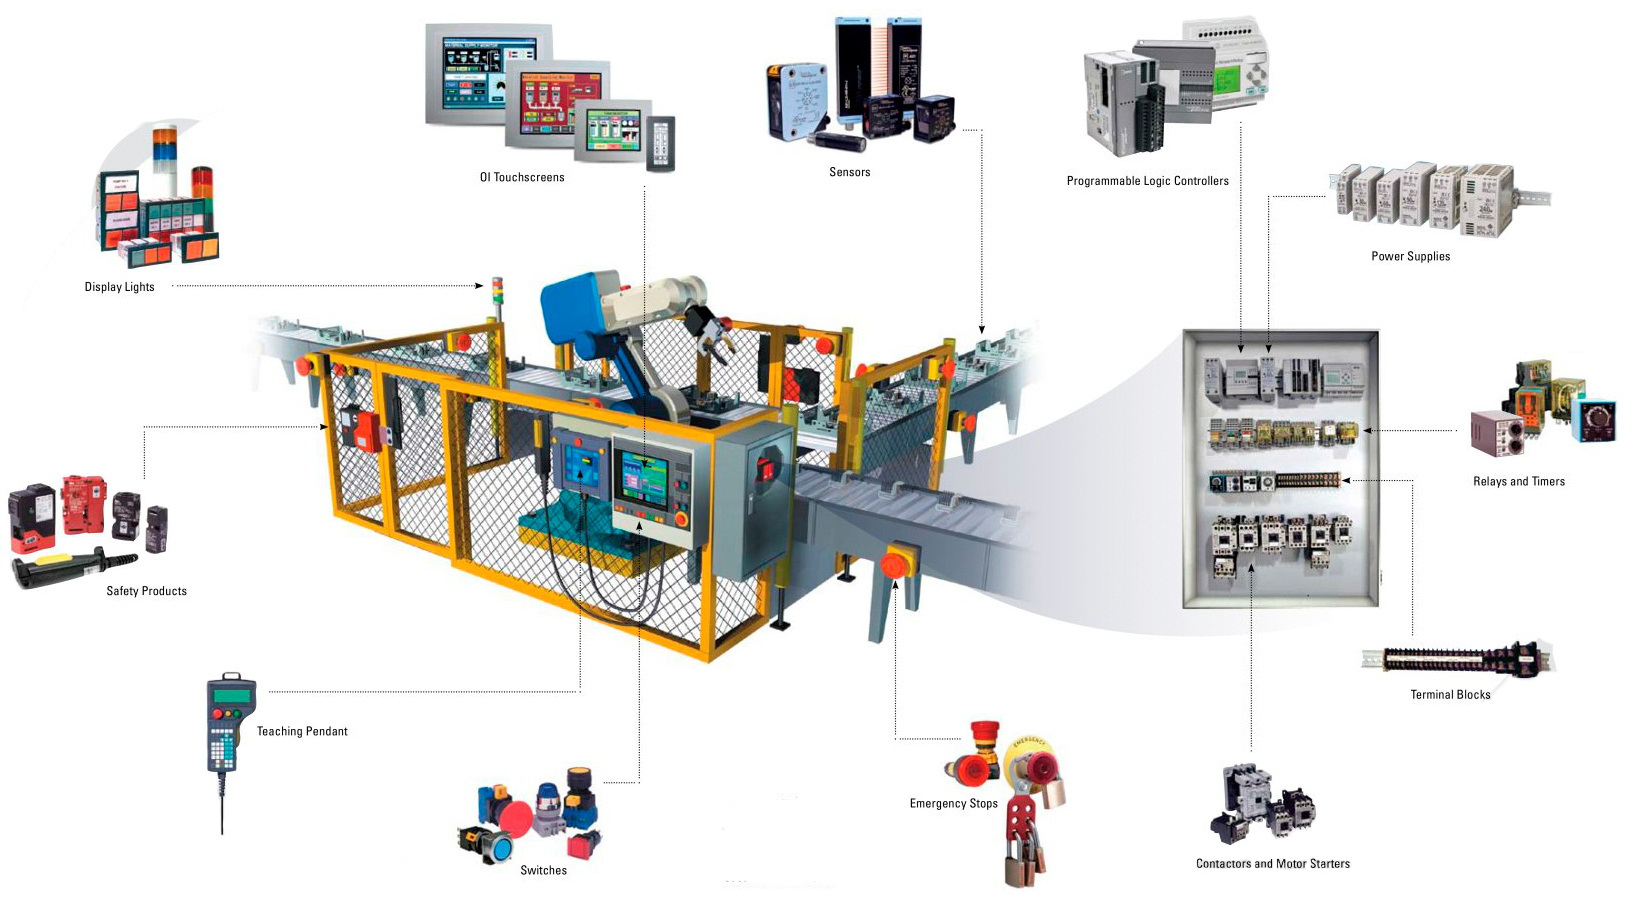 IDEC Distributor | IDEC Automation Products | Manufacturing ... on